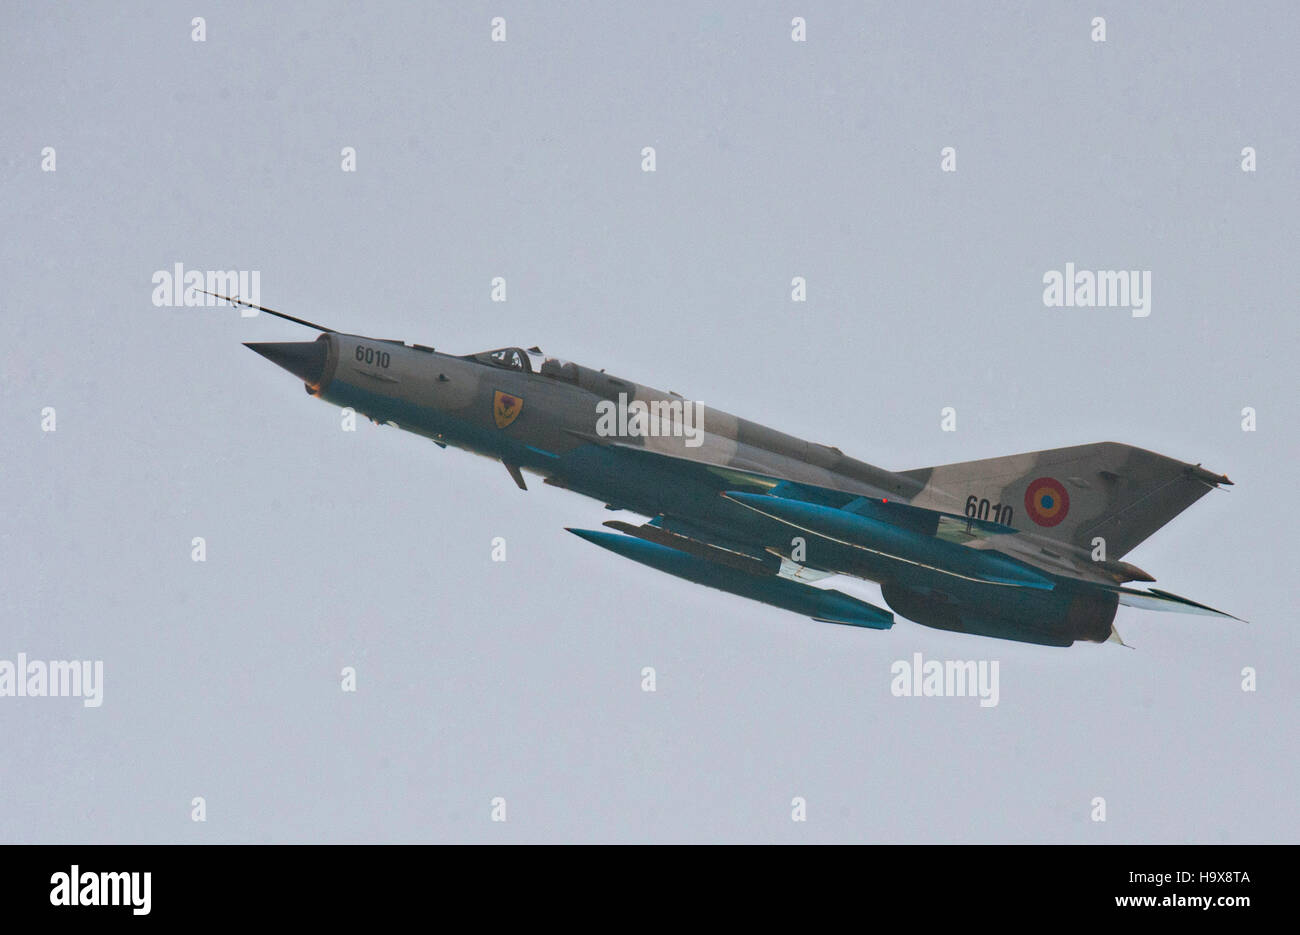 A Romanian Air Force Mikoyan-Gurevich MiG-21 supersonic jet fighter aircraft flies over a missile site during a - Stock Image